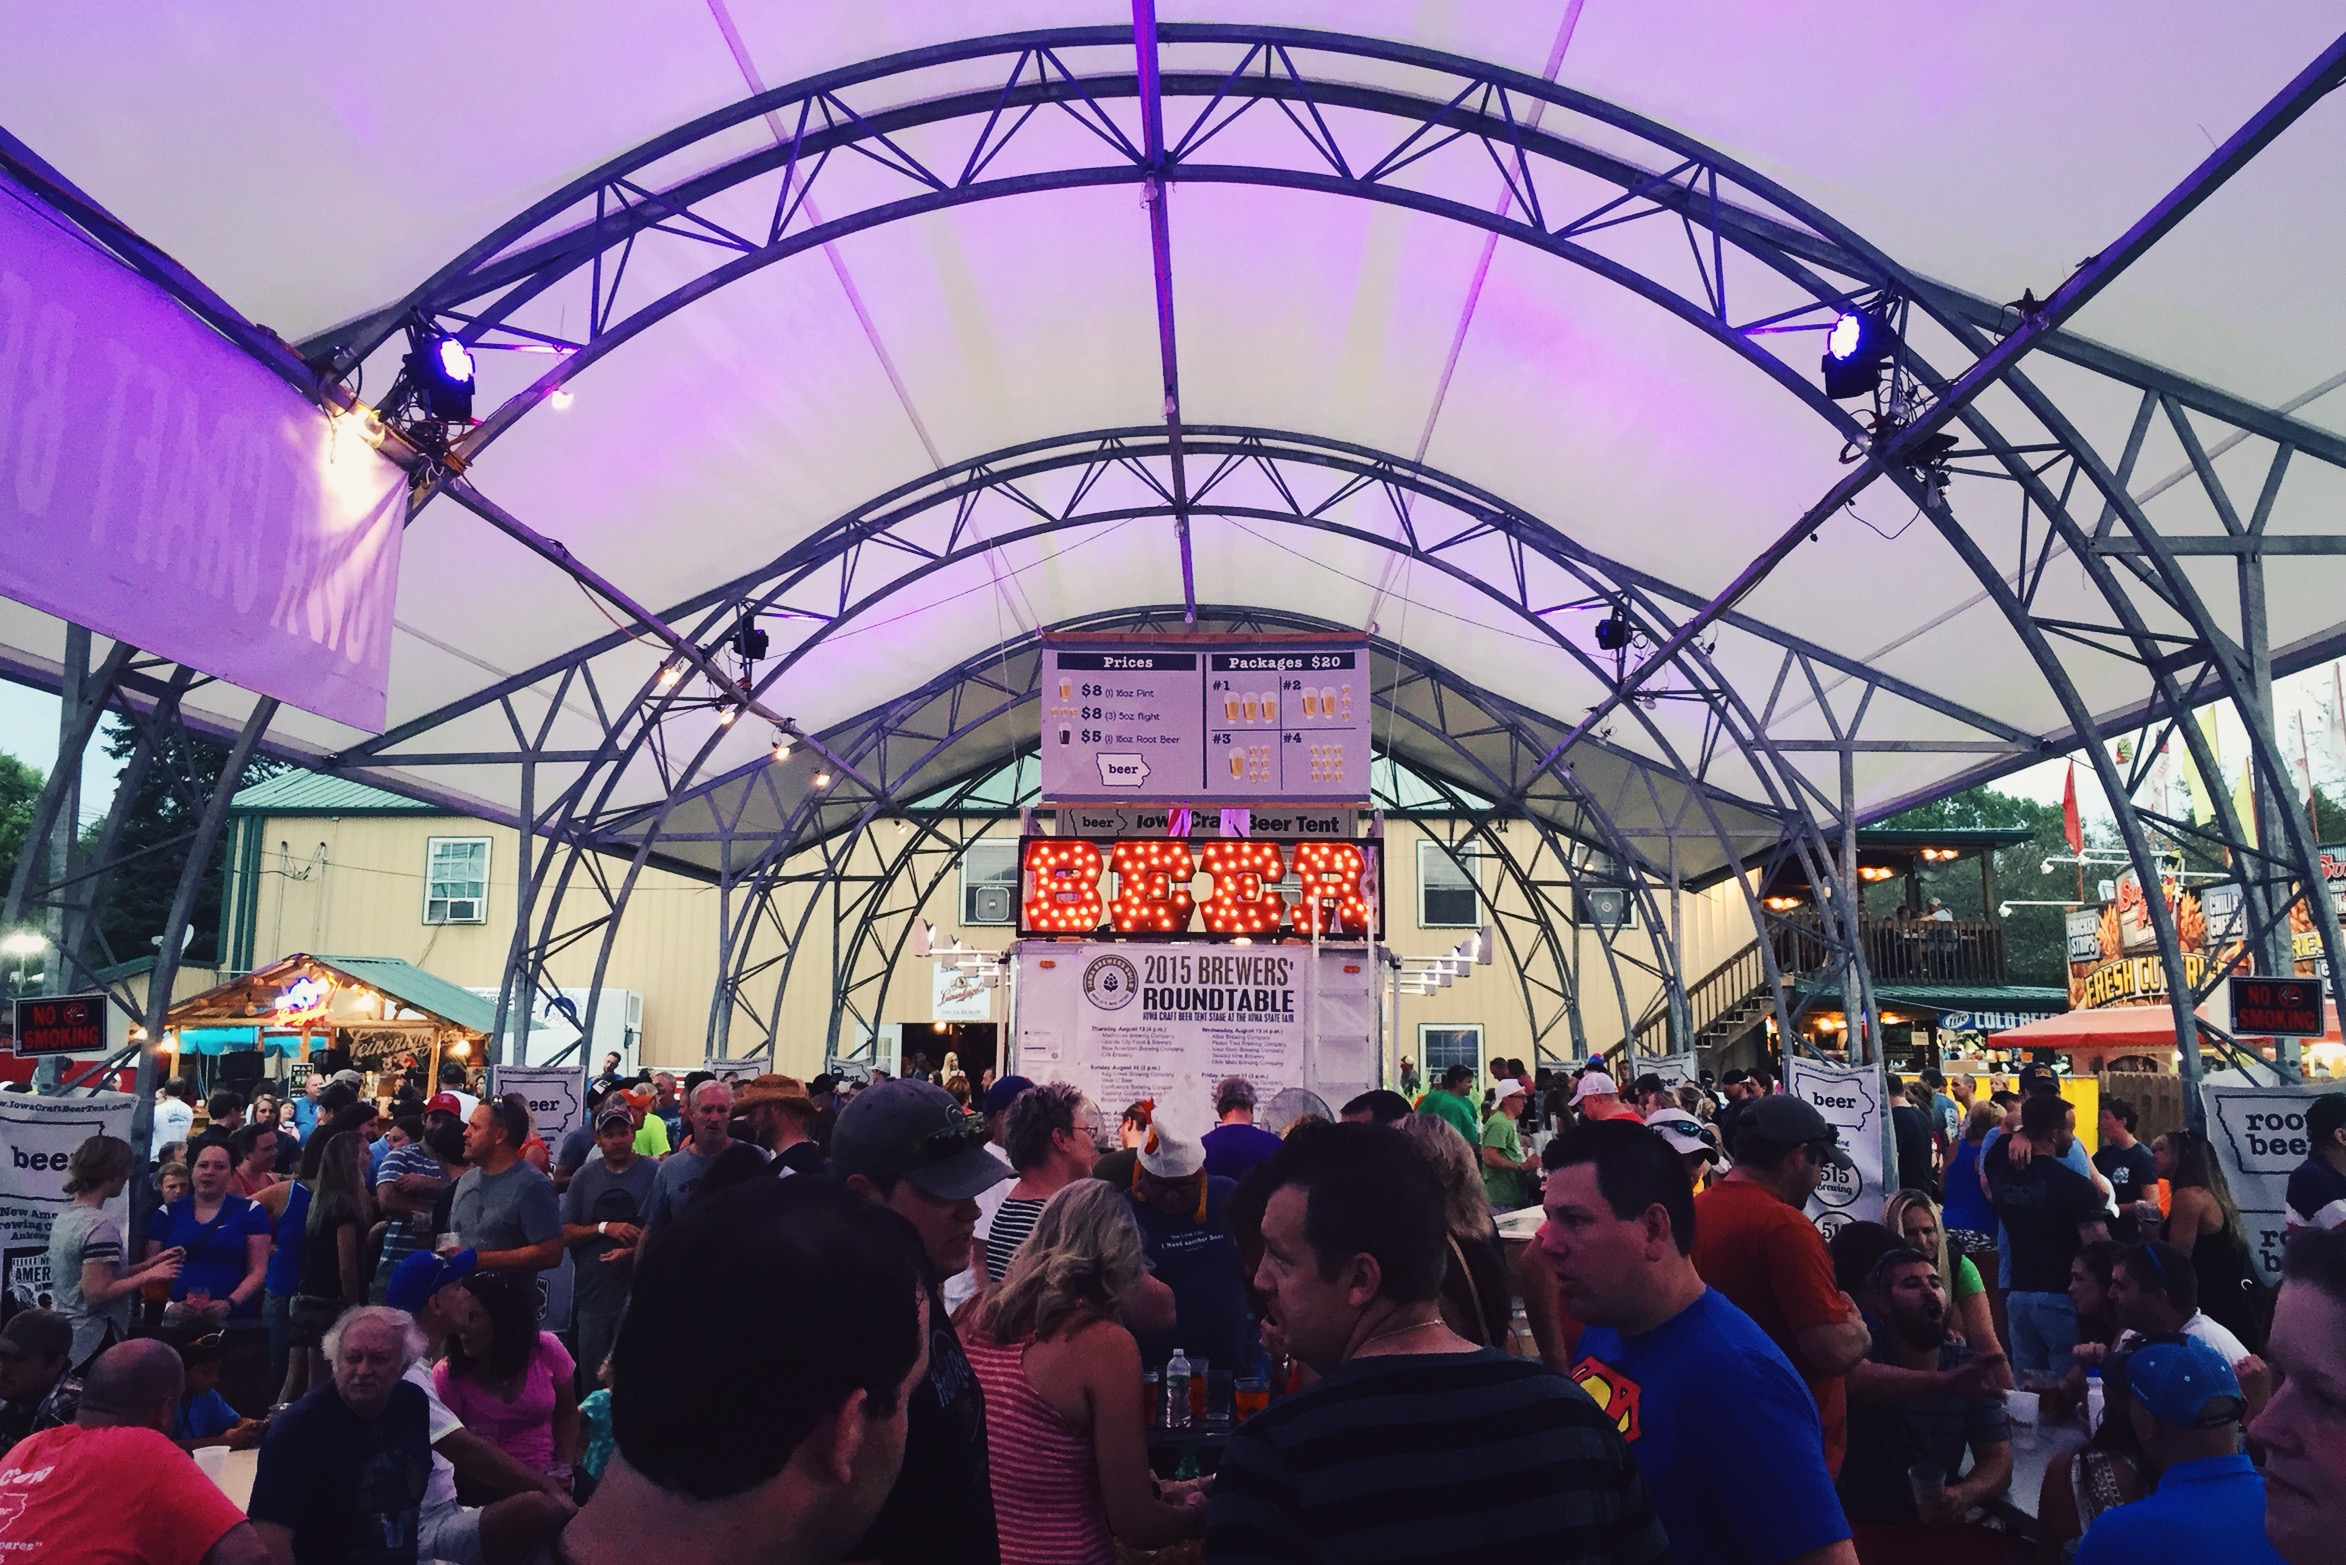 the beer tent at the Iowa State Fair u2026 & Nothing Compares - Pouring Brews at the Iowa Craft Beer Tent - Des ...